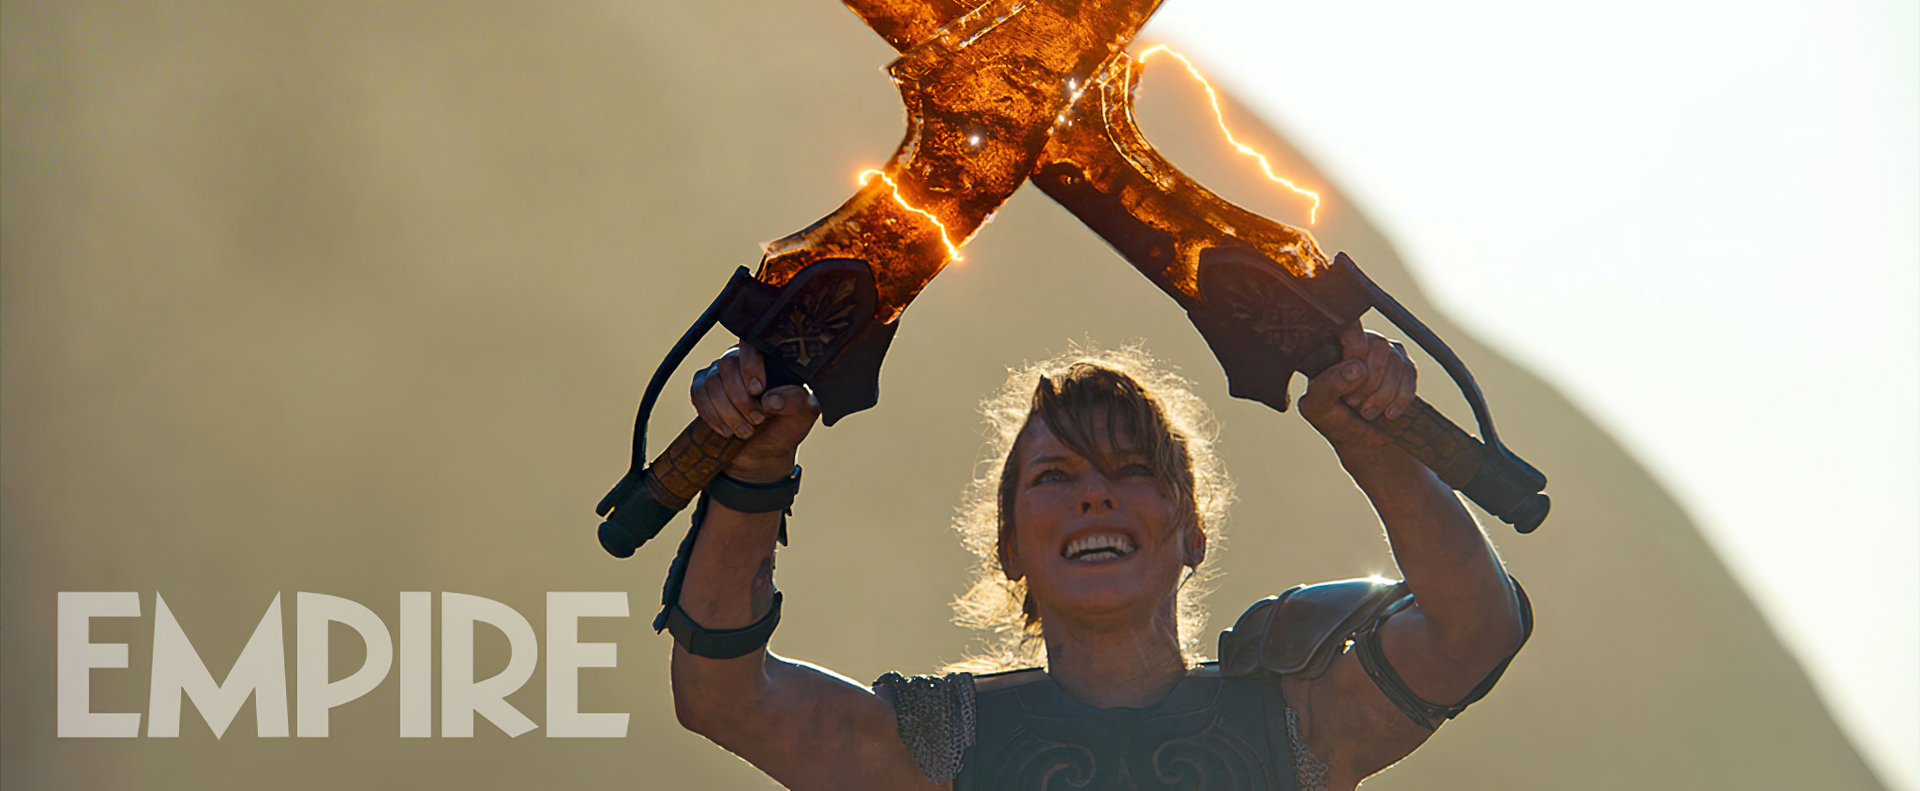 Milla Jovovich Uses Dual Blades In Monster Hunter Movie Because That S Her Weapon Of Choice In The Game